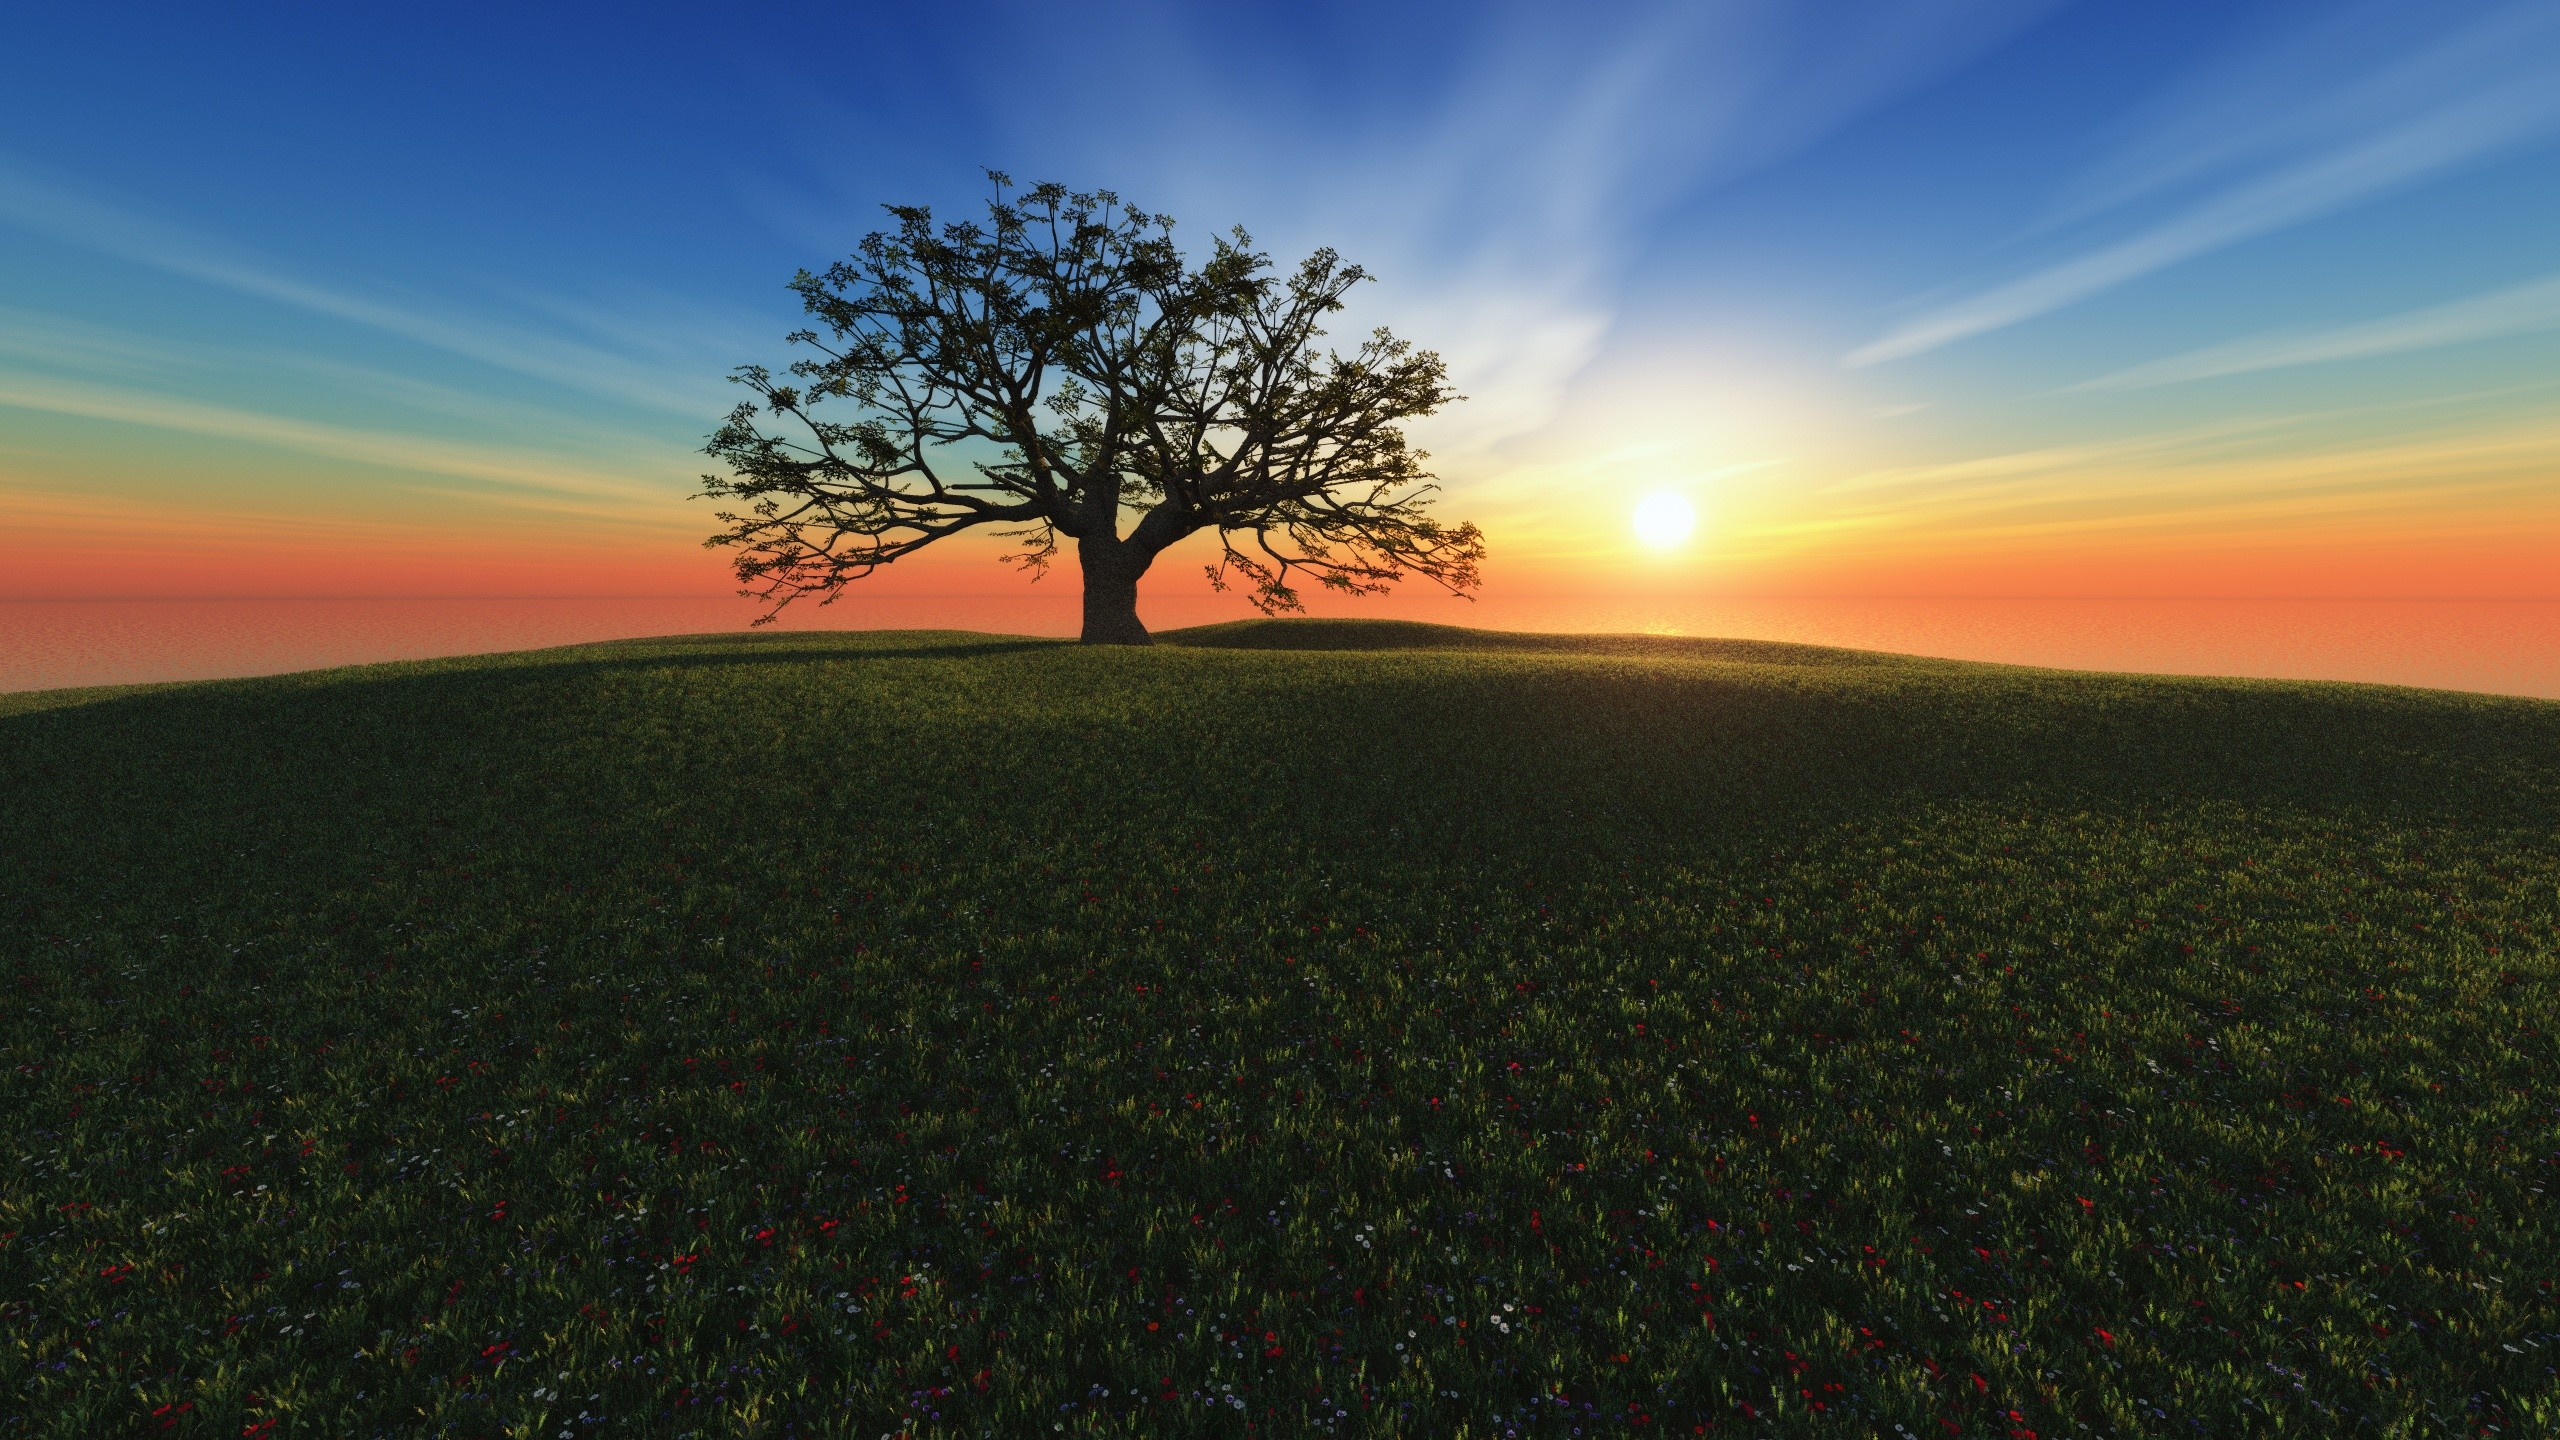 Tree of life desktop wallpaper 56 images - Family tree desktop wallpaper ...